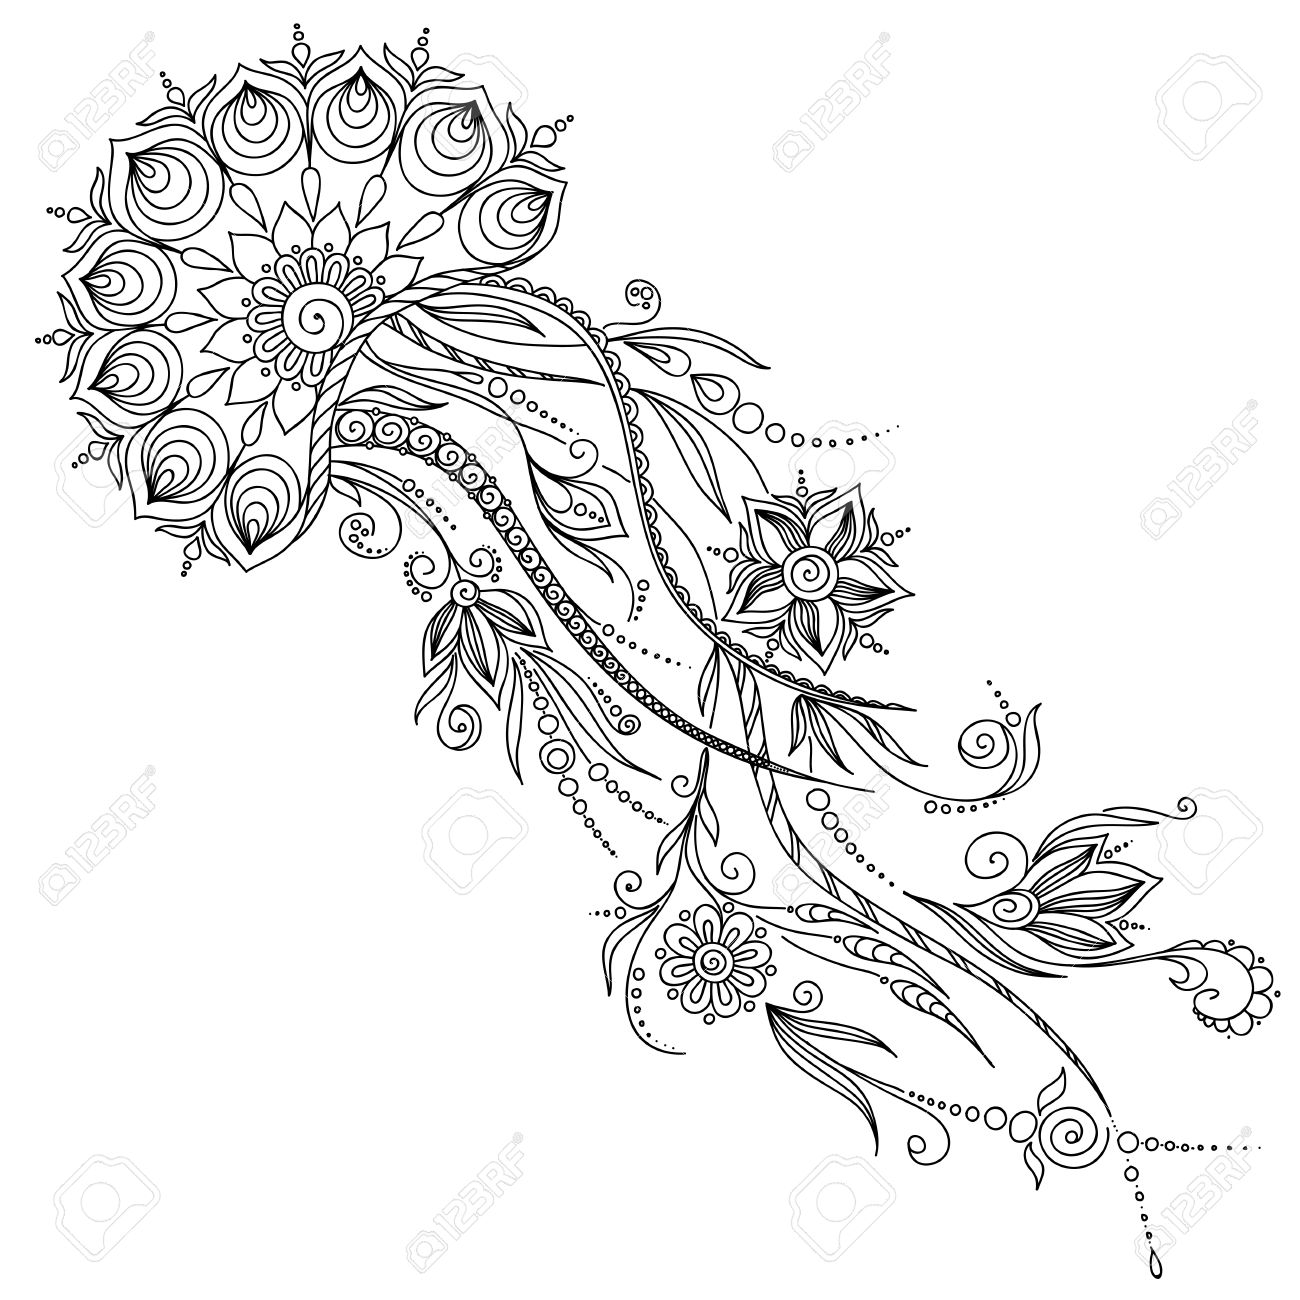 1300x1300 28 Collection Of Abstract Jellyfish Drawing High Quality Free